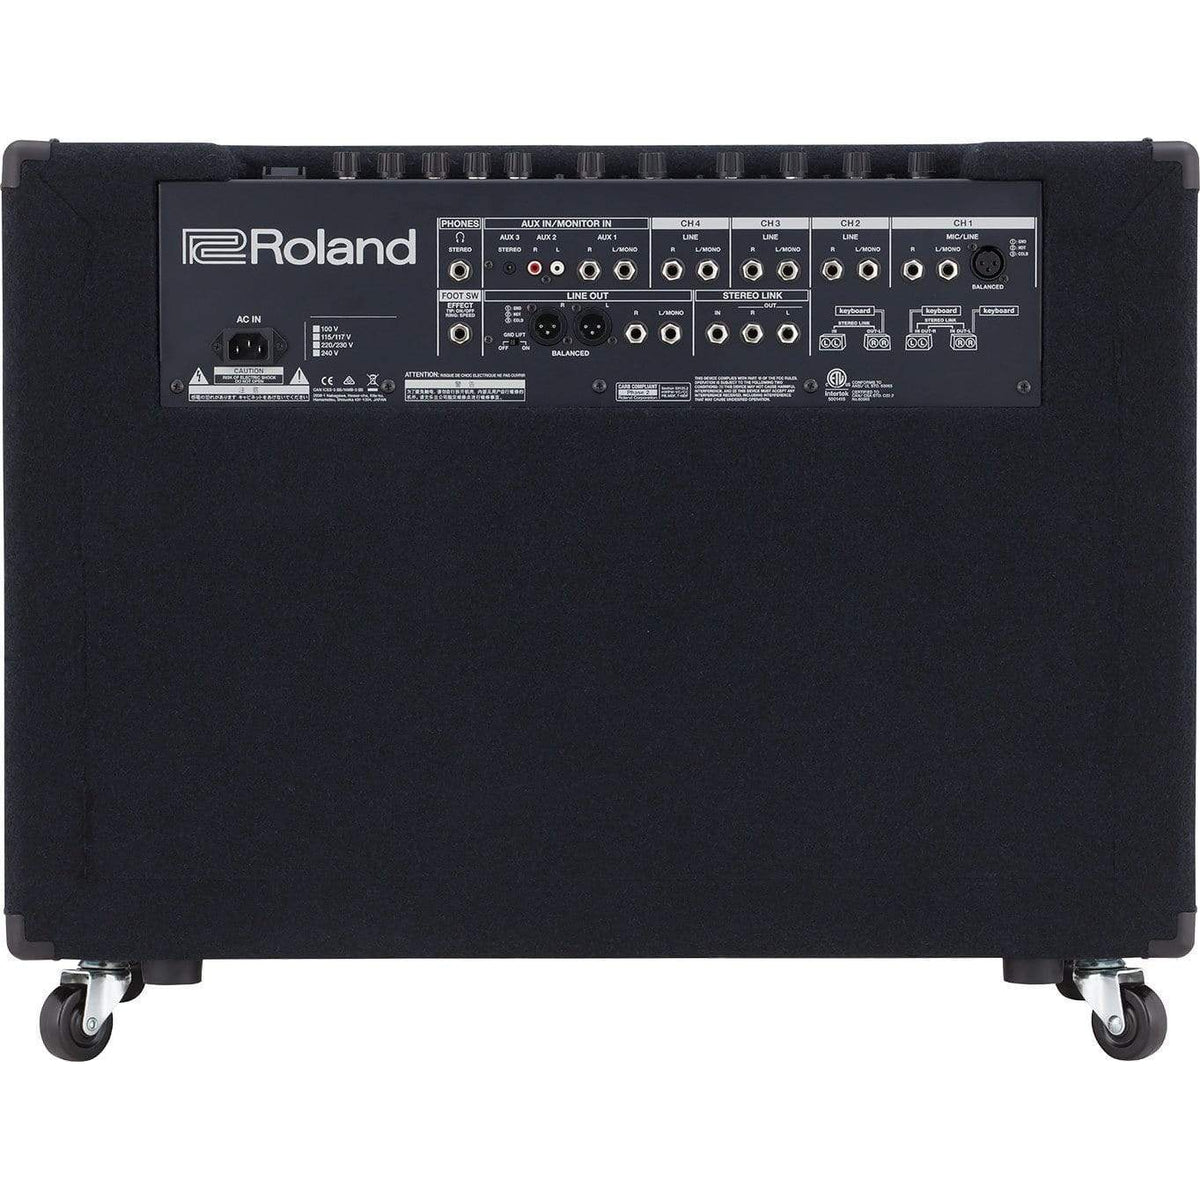 Roland KC-990 Stereo Mixing Keyboard Amplifier